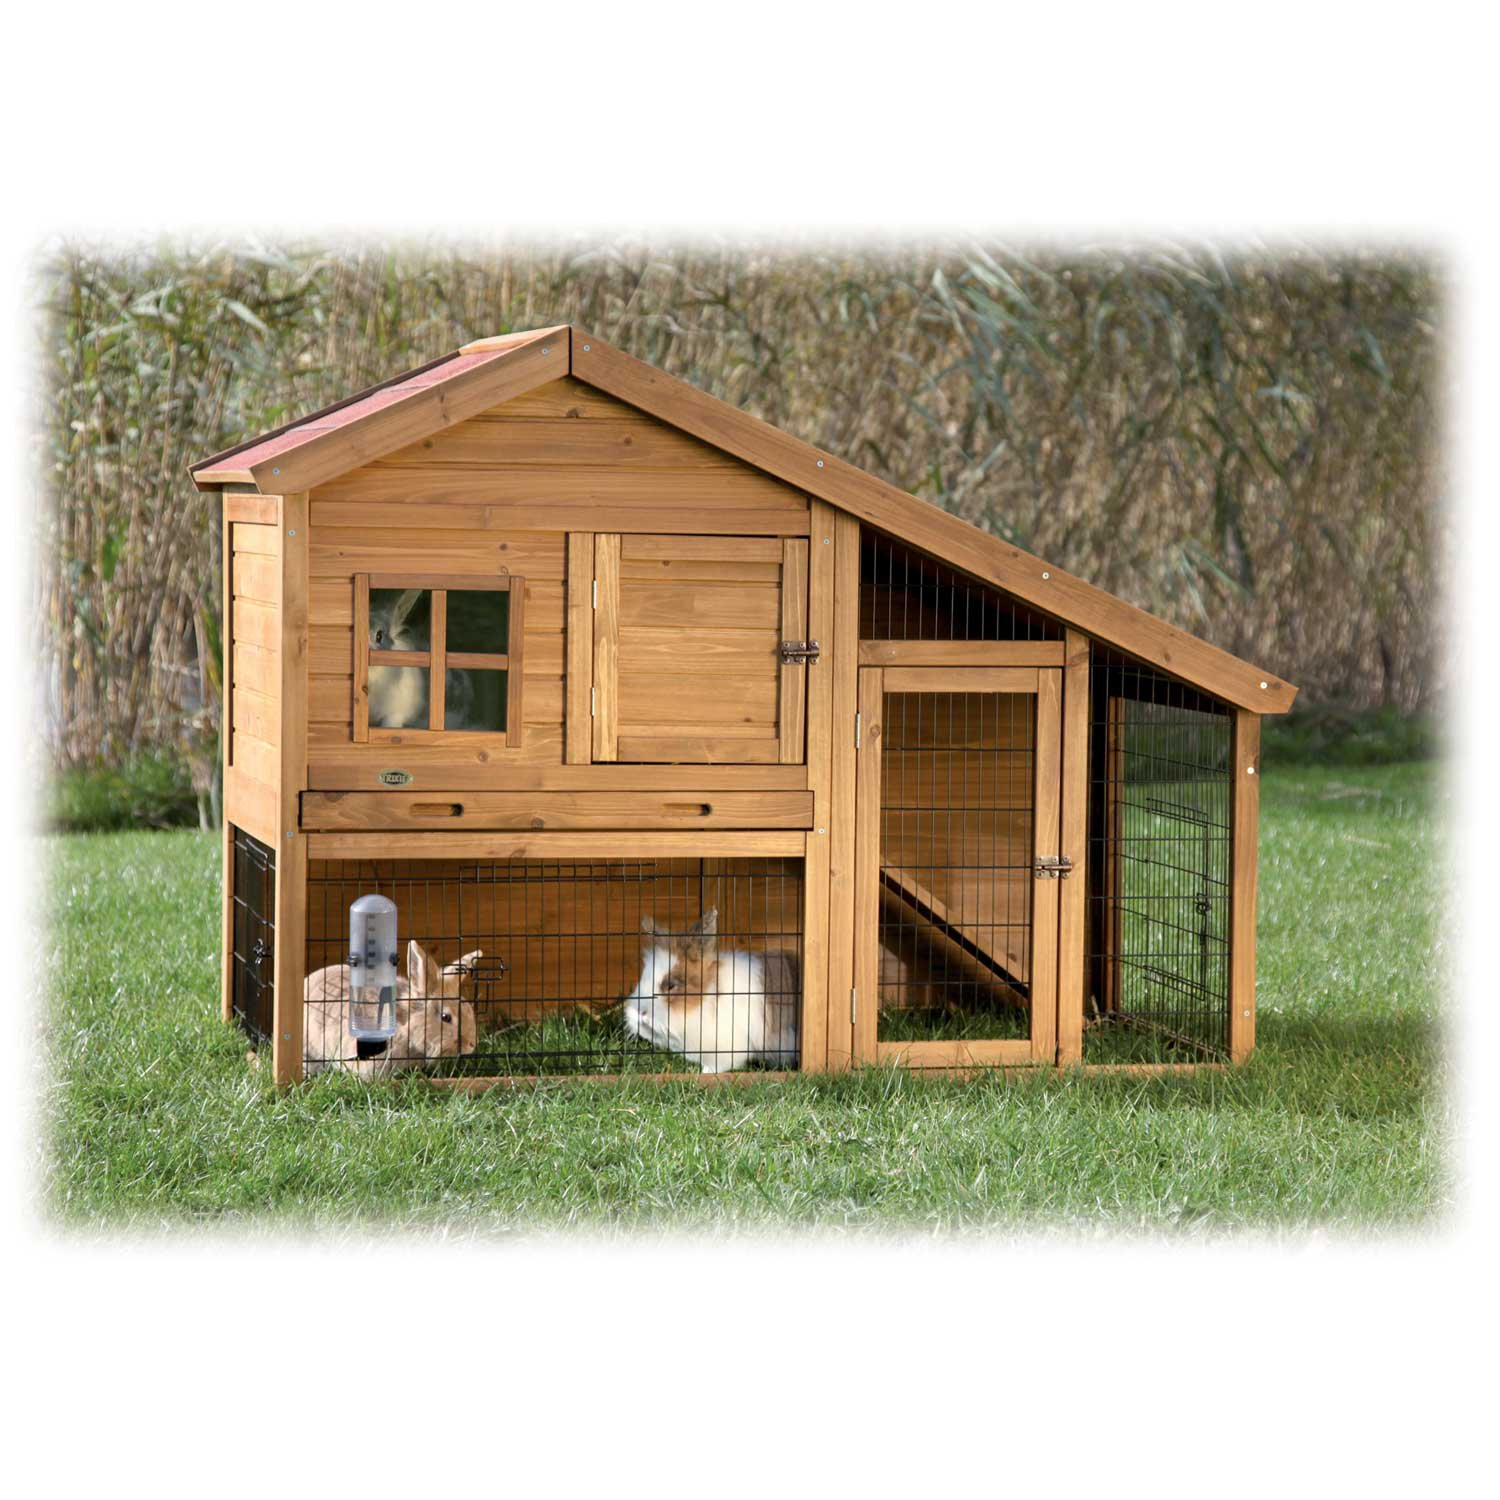 Trixie Natura Two Story Sloped Roof Rabbit Hutch with Run 59.25 L X 42W X 31.5 H 84 LBS Brown